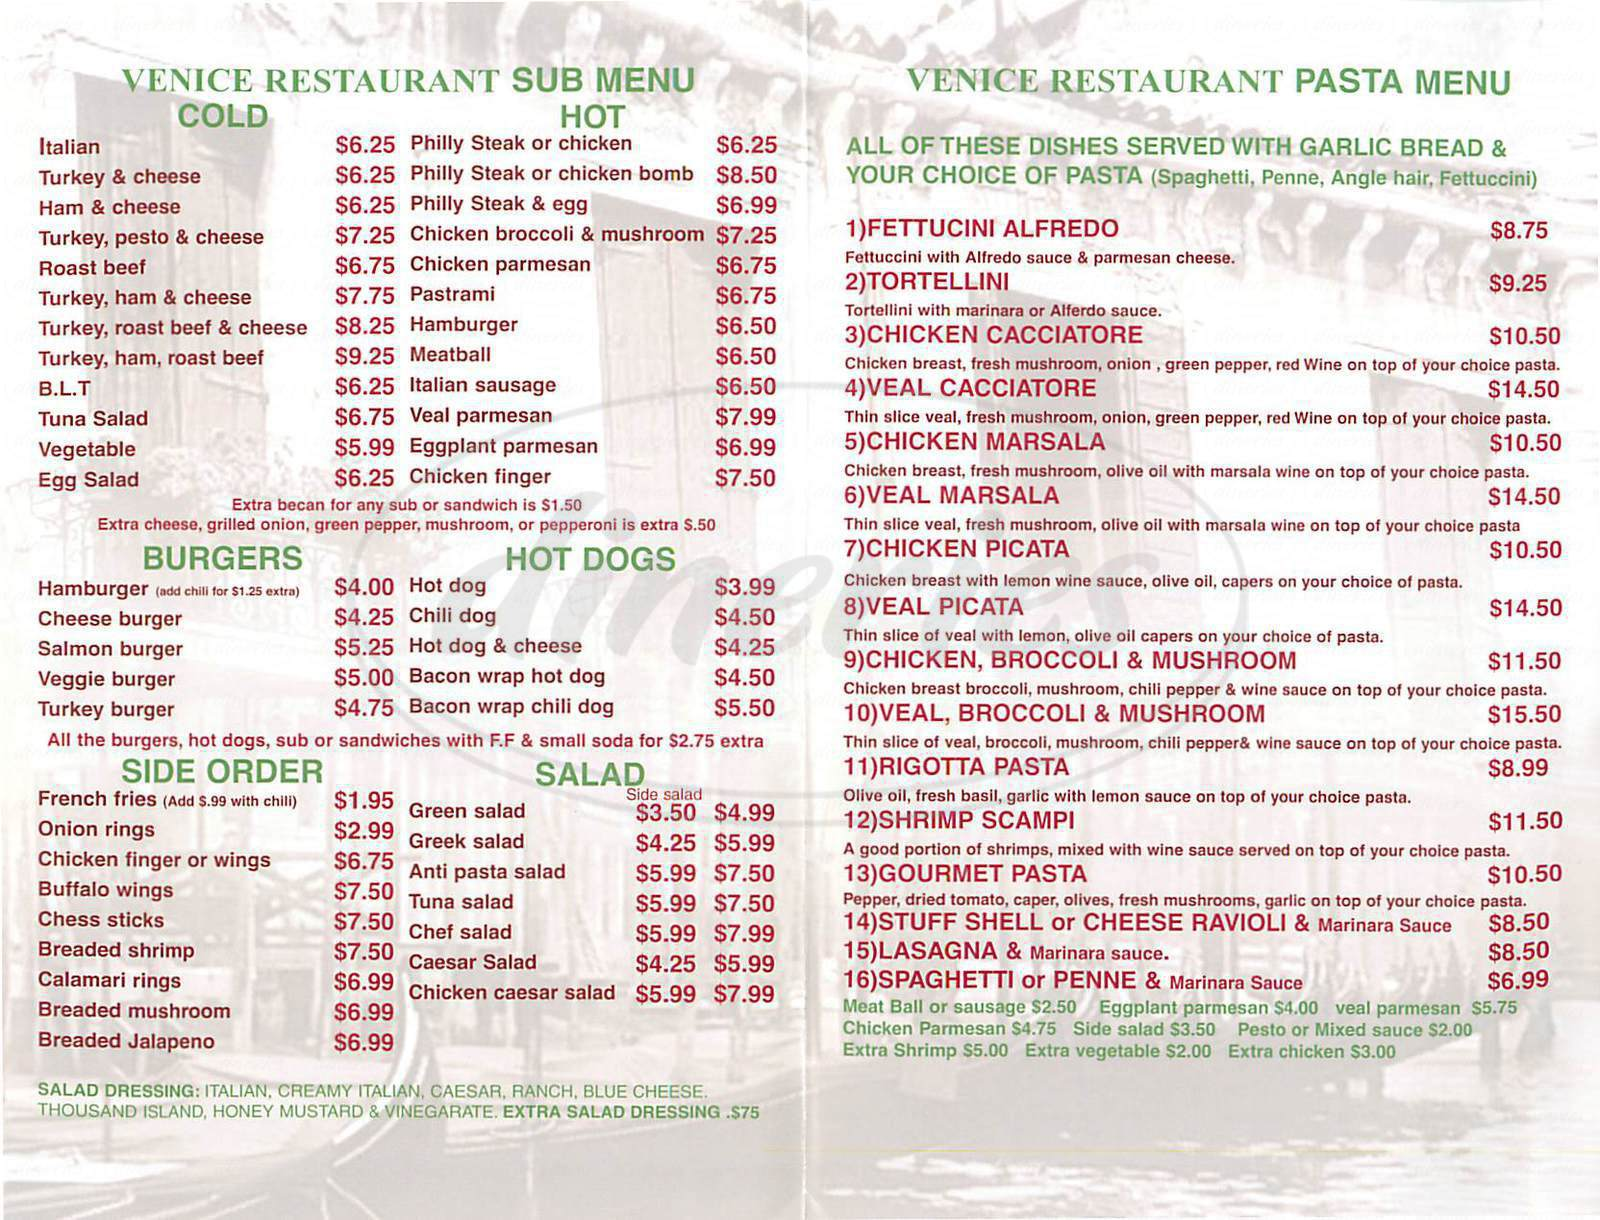 menu for Venice Restaurant